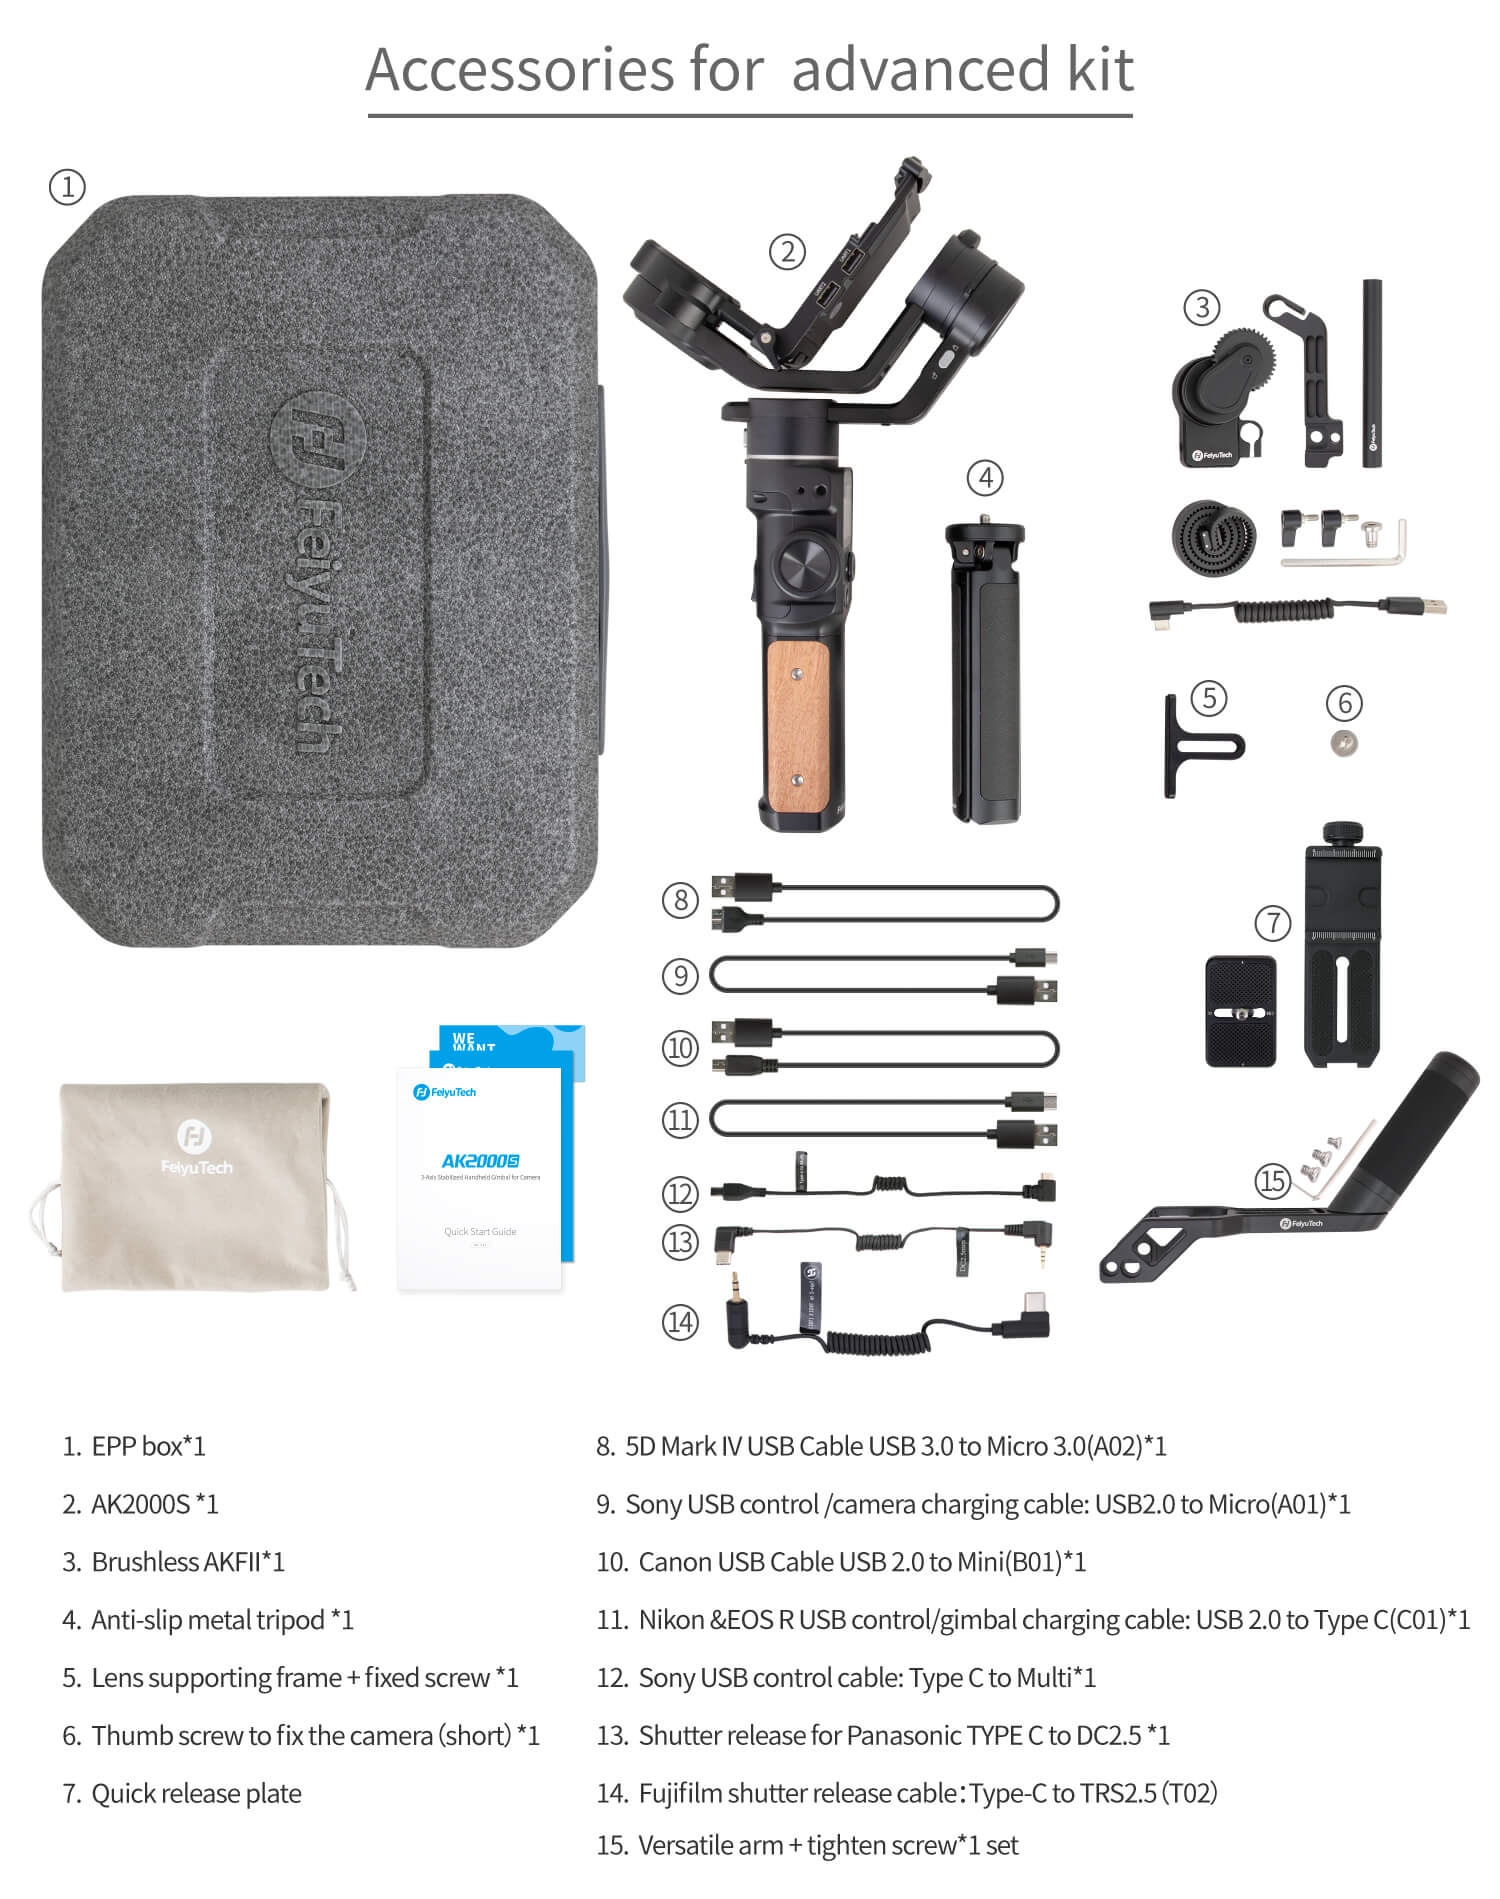 Accessories for standard kit